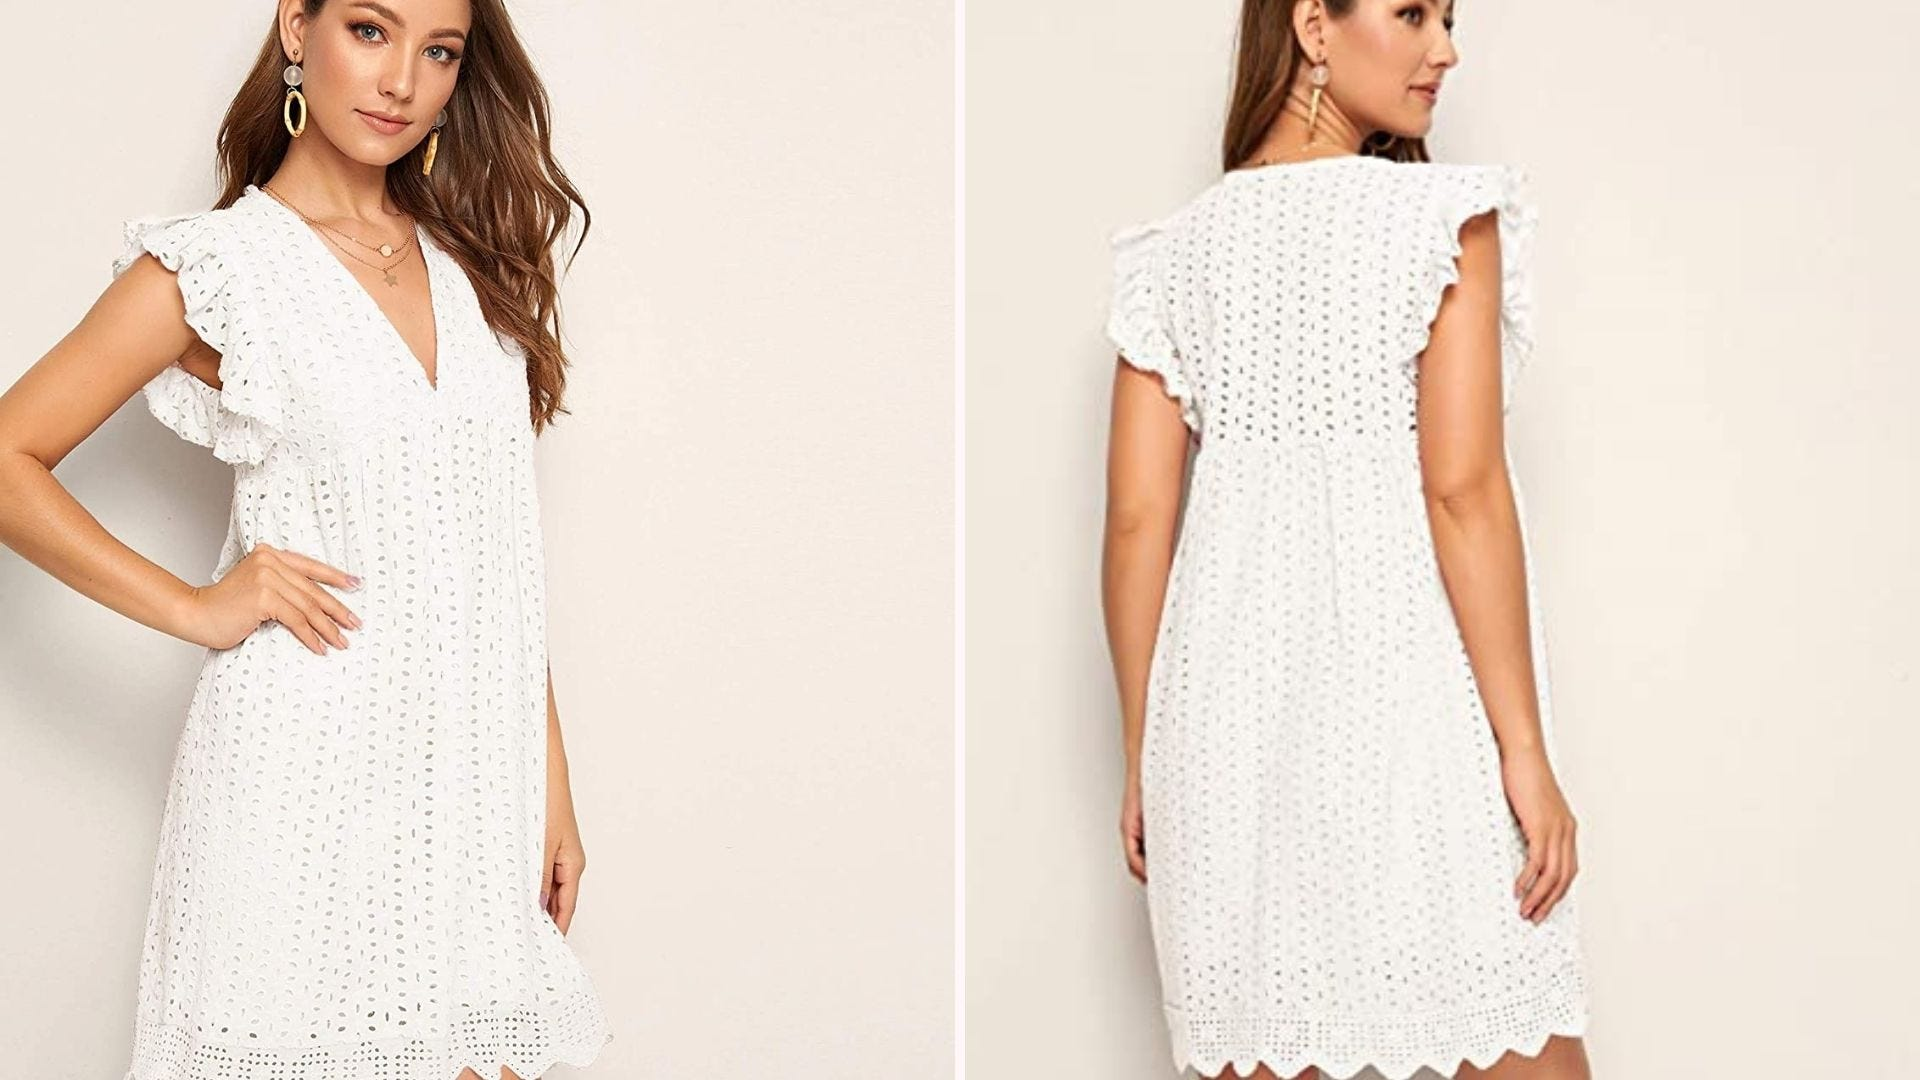 Front and back view of a woman wearing a white eyelet dress